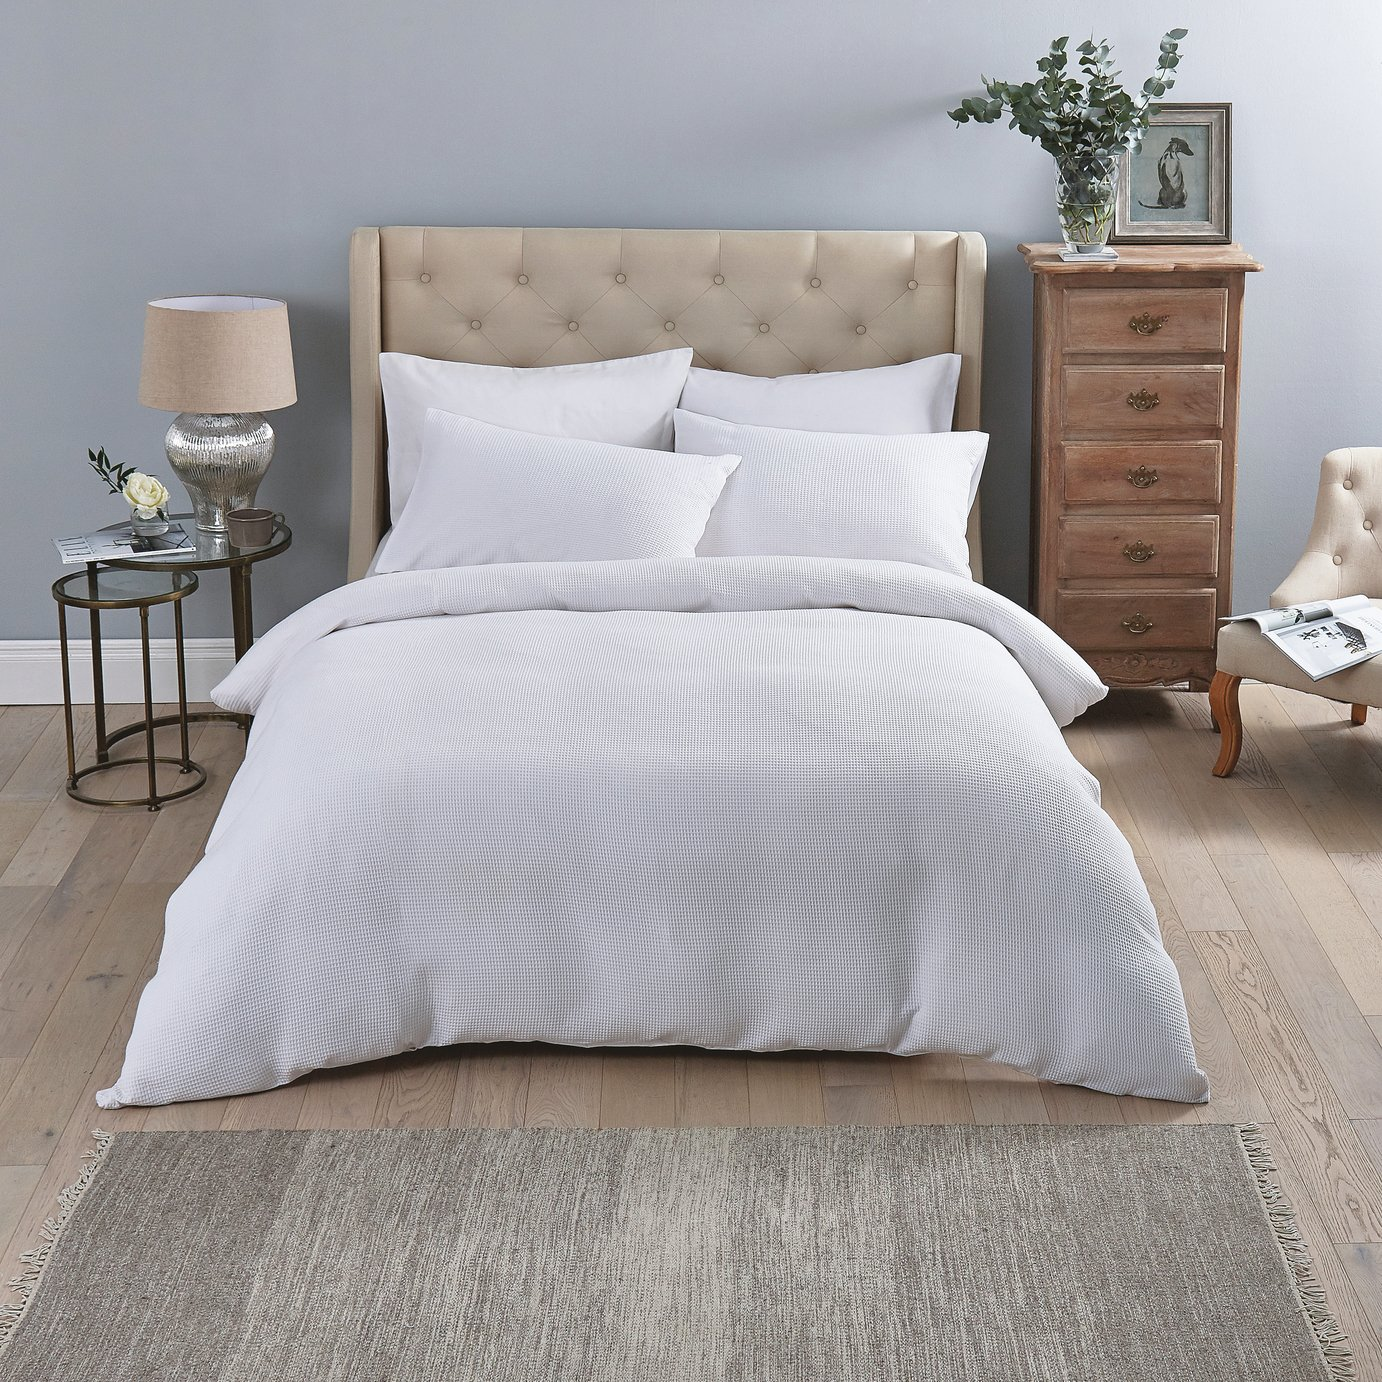 Sainsbury's Home Luxury White Waffle Bedding Set – Double